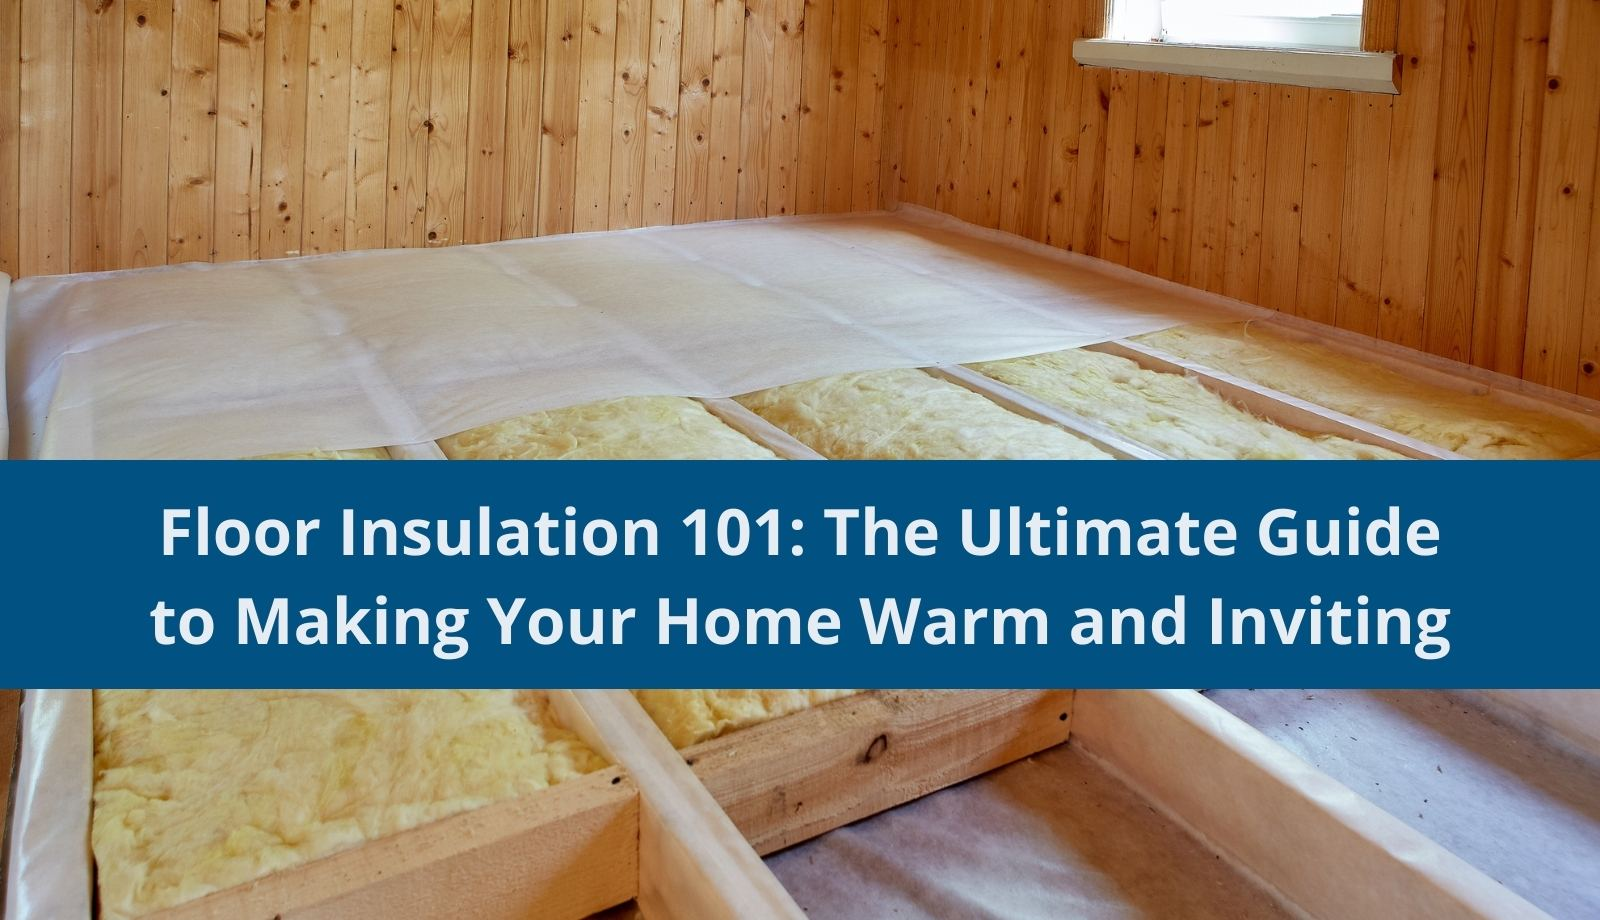 Floor Insulation 101 The Ultimate